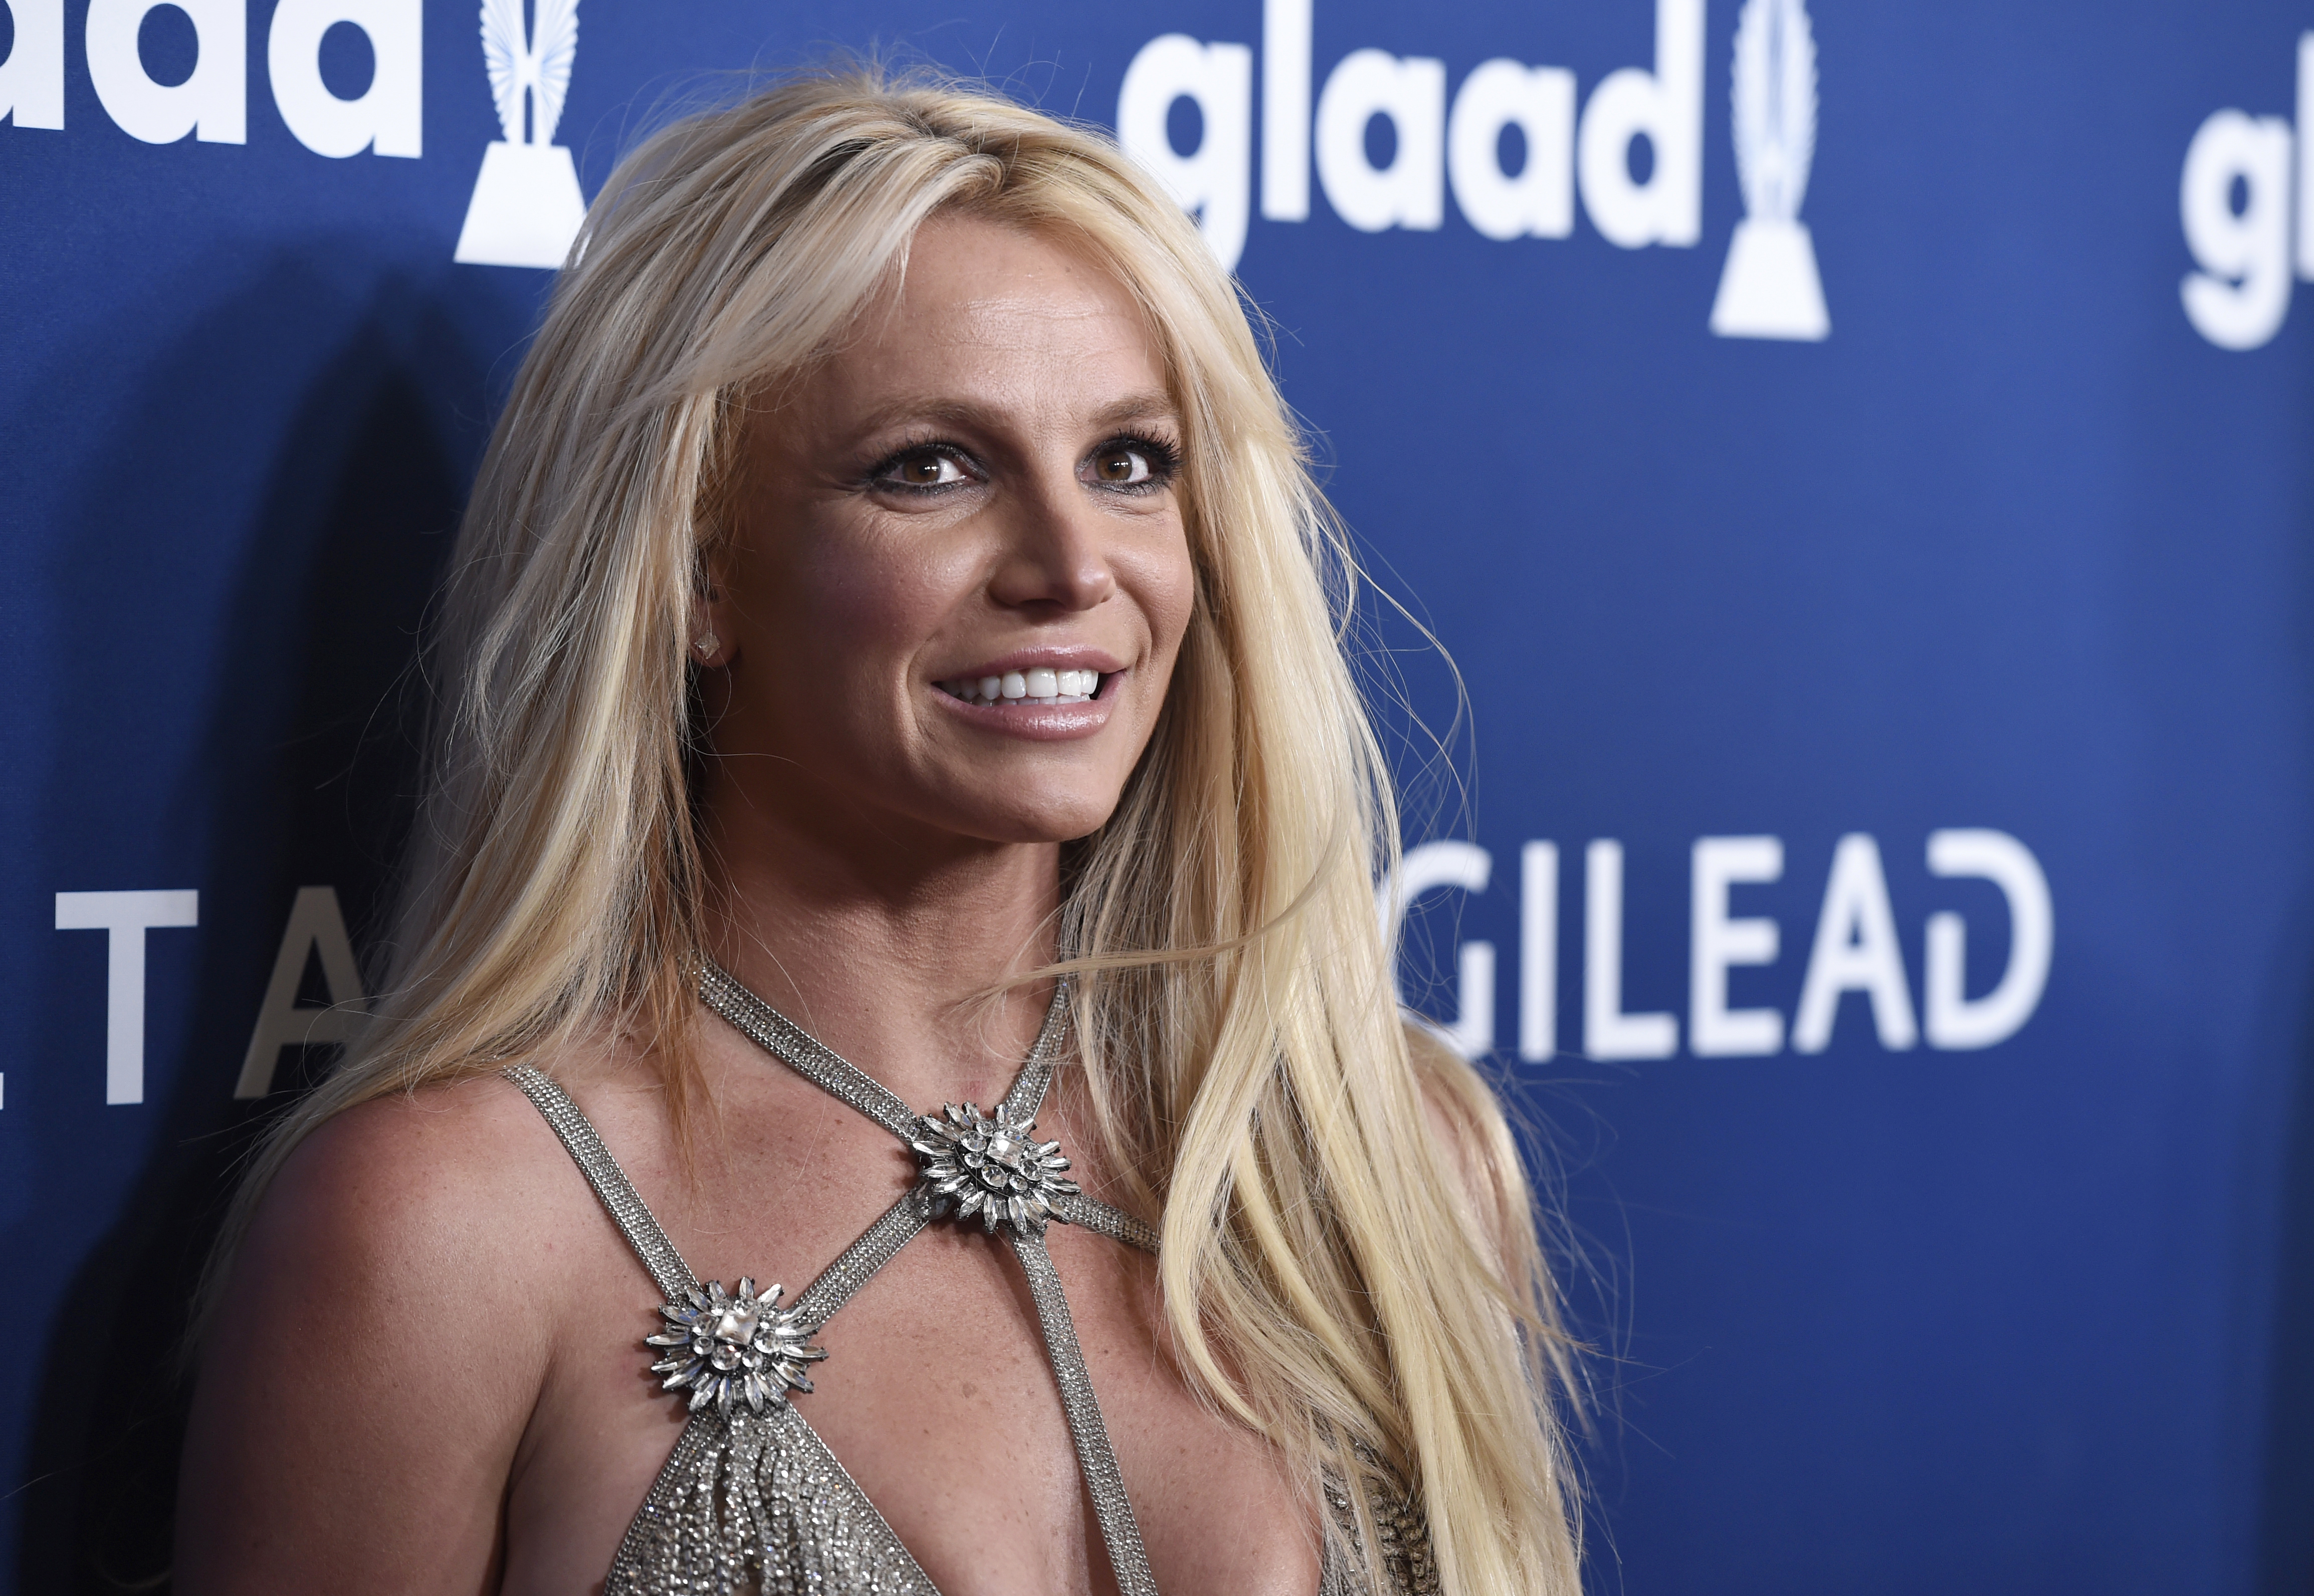 Britney Spears arrives at the 29th annual GLAAD Media Awards on April 12, 2018, in Beverly Hills, Calif.